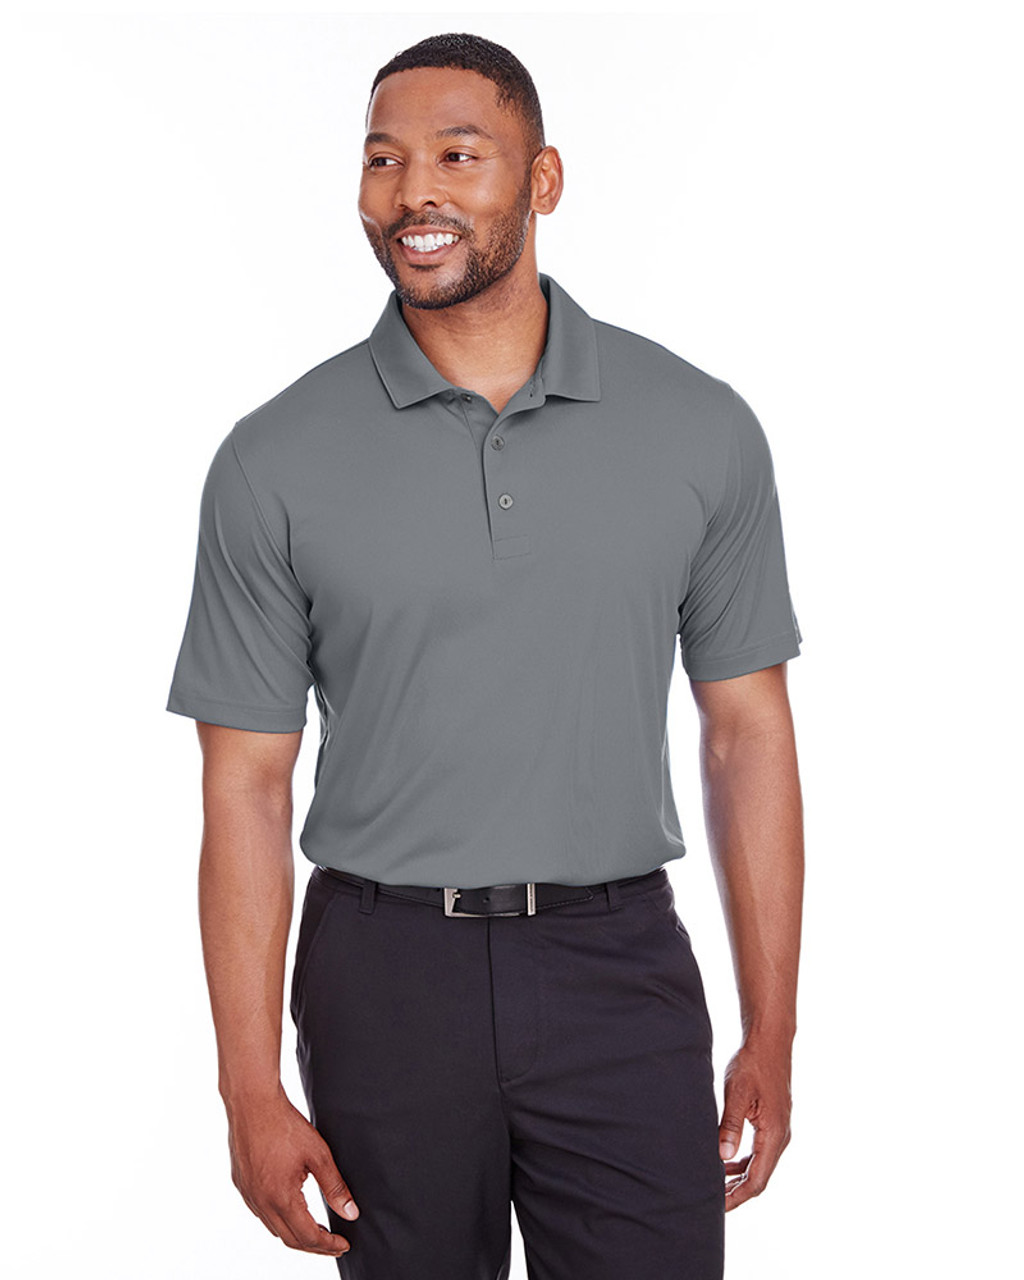 Quiet Shade - 596799 Puma Golf Men's Icon Golf Polo | Blankclothing.ca